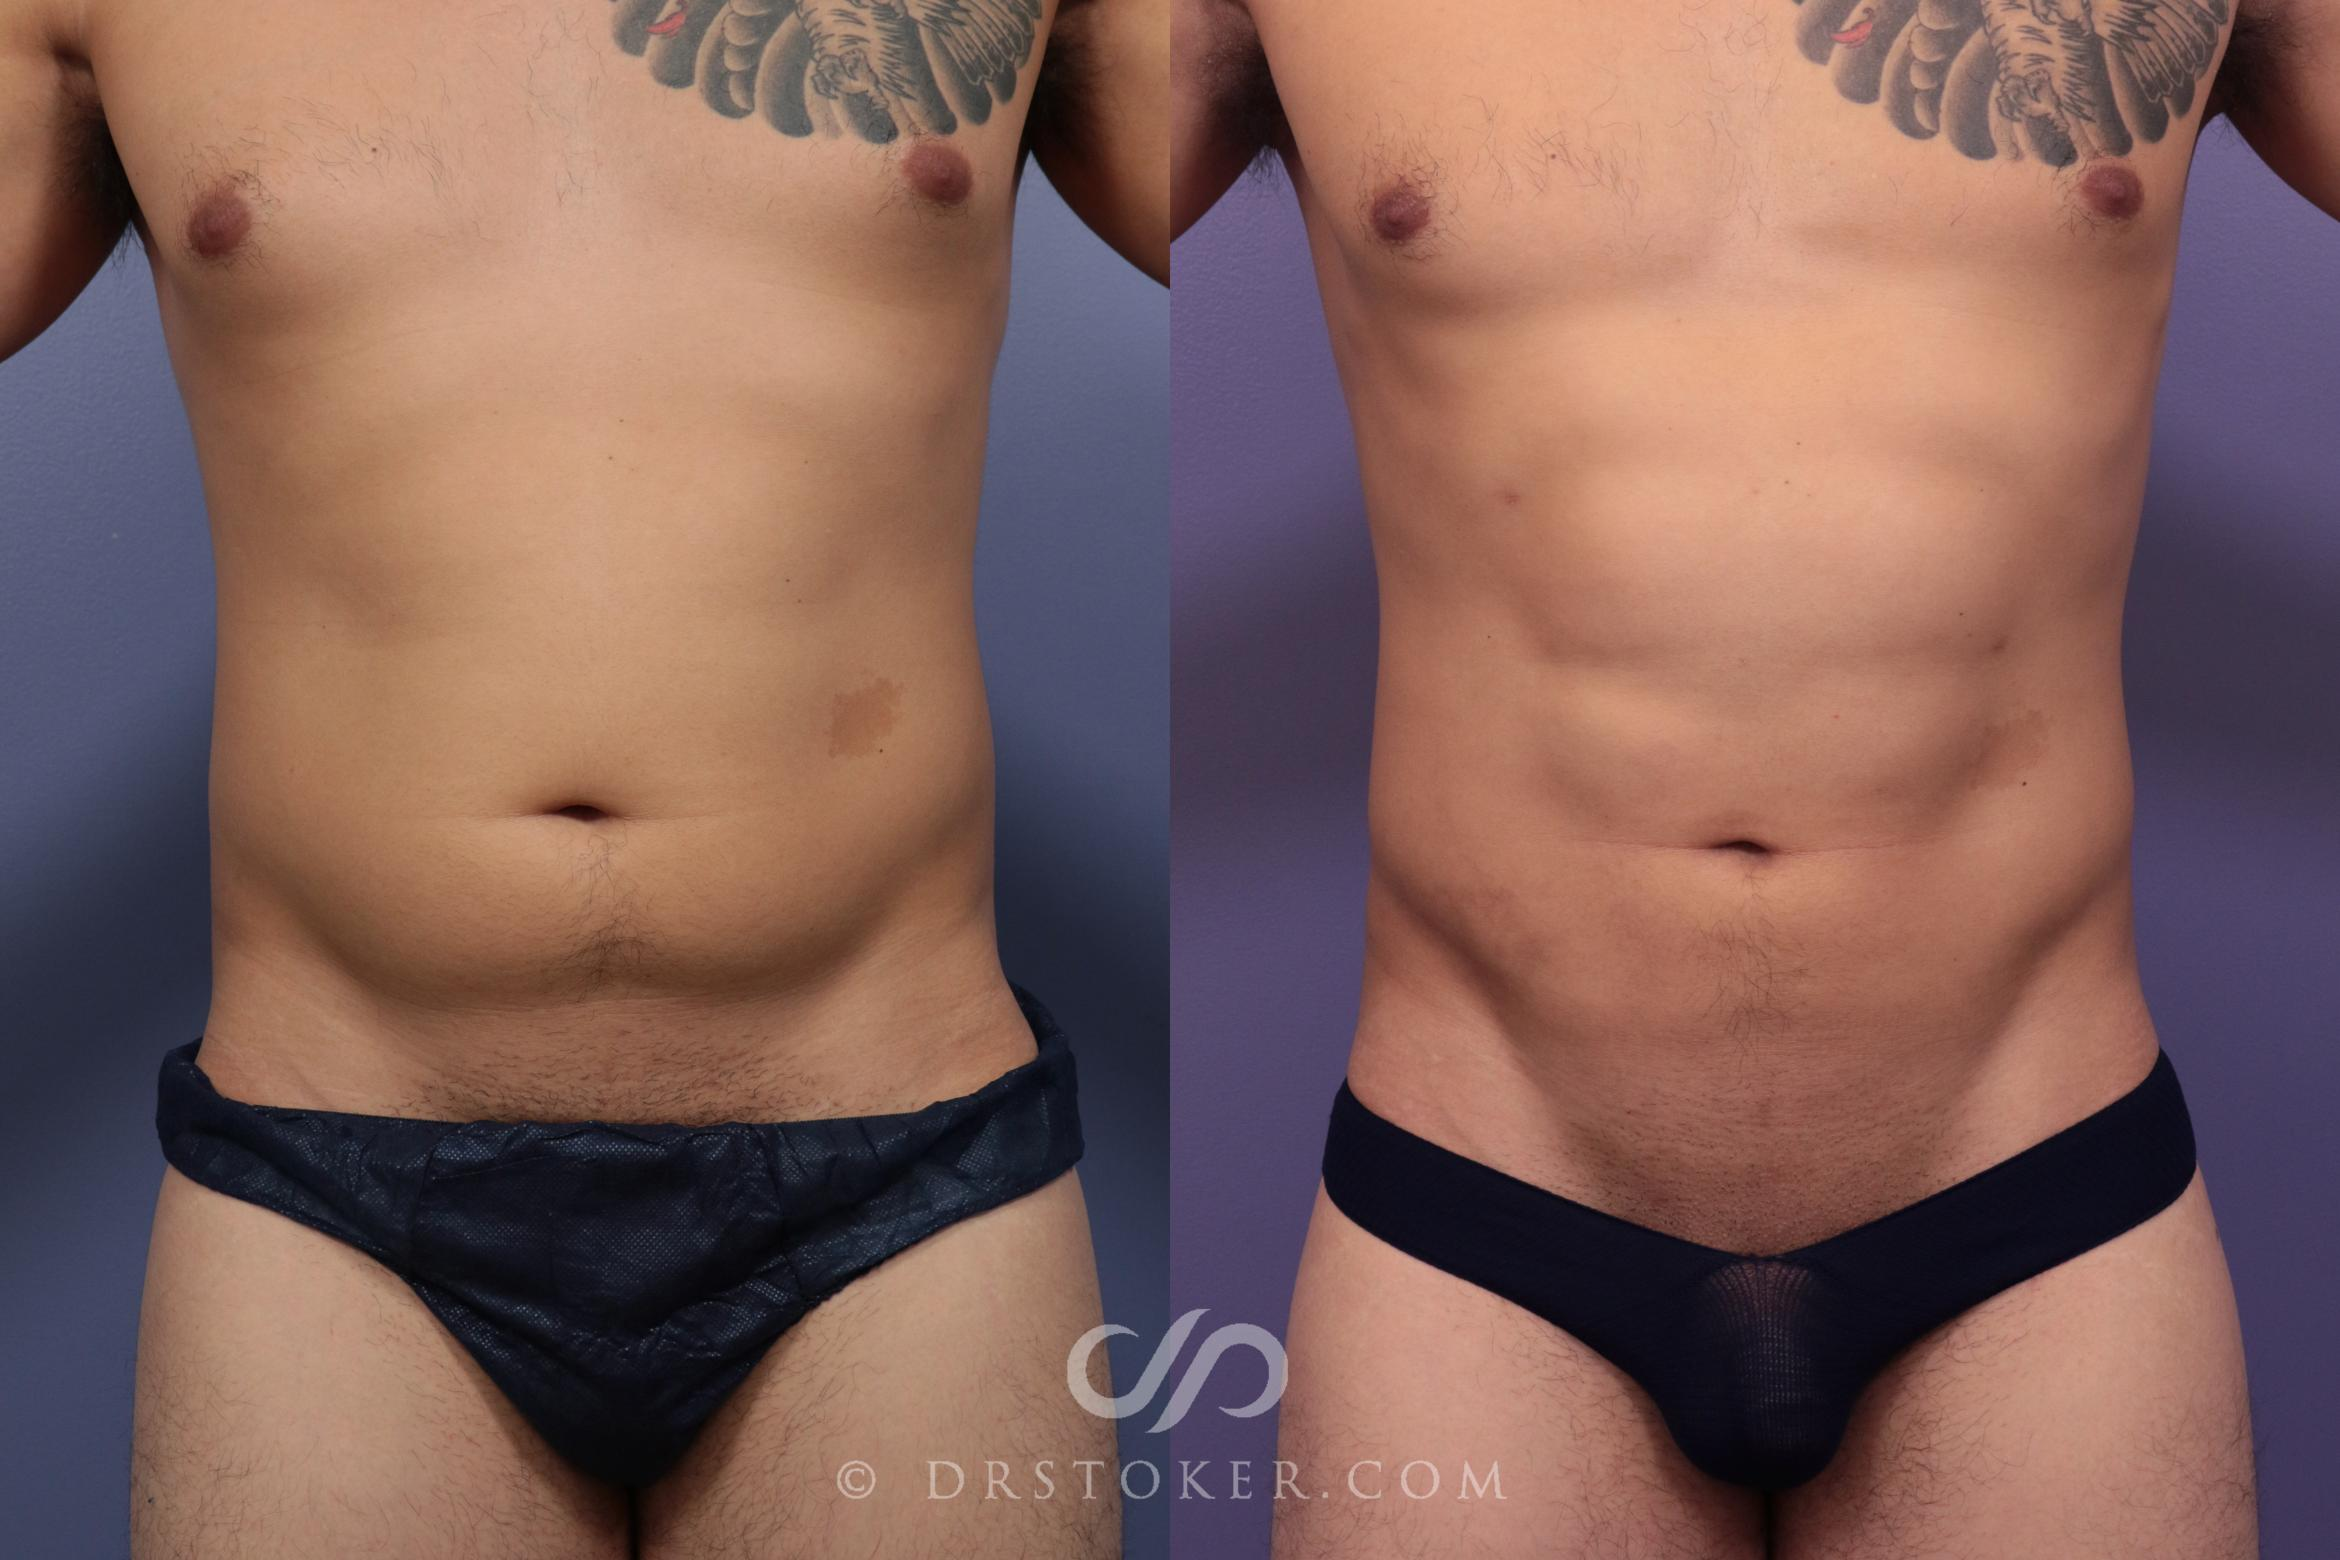 Liposuction - Abdominal Etching & Sculpting Case 984 Before & After View #1 | Marina del Rey, CA | Dr. David Stoker